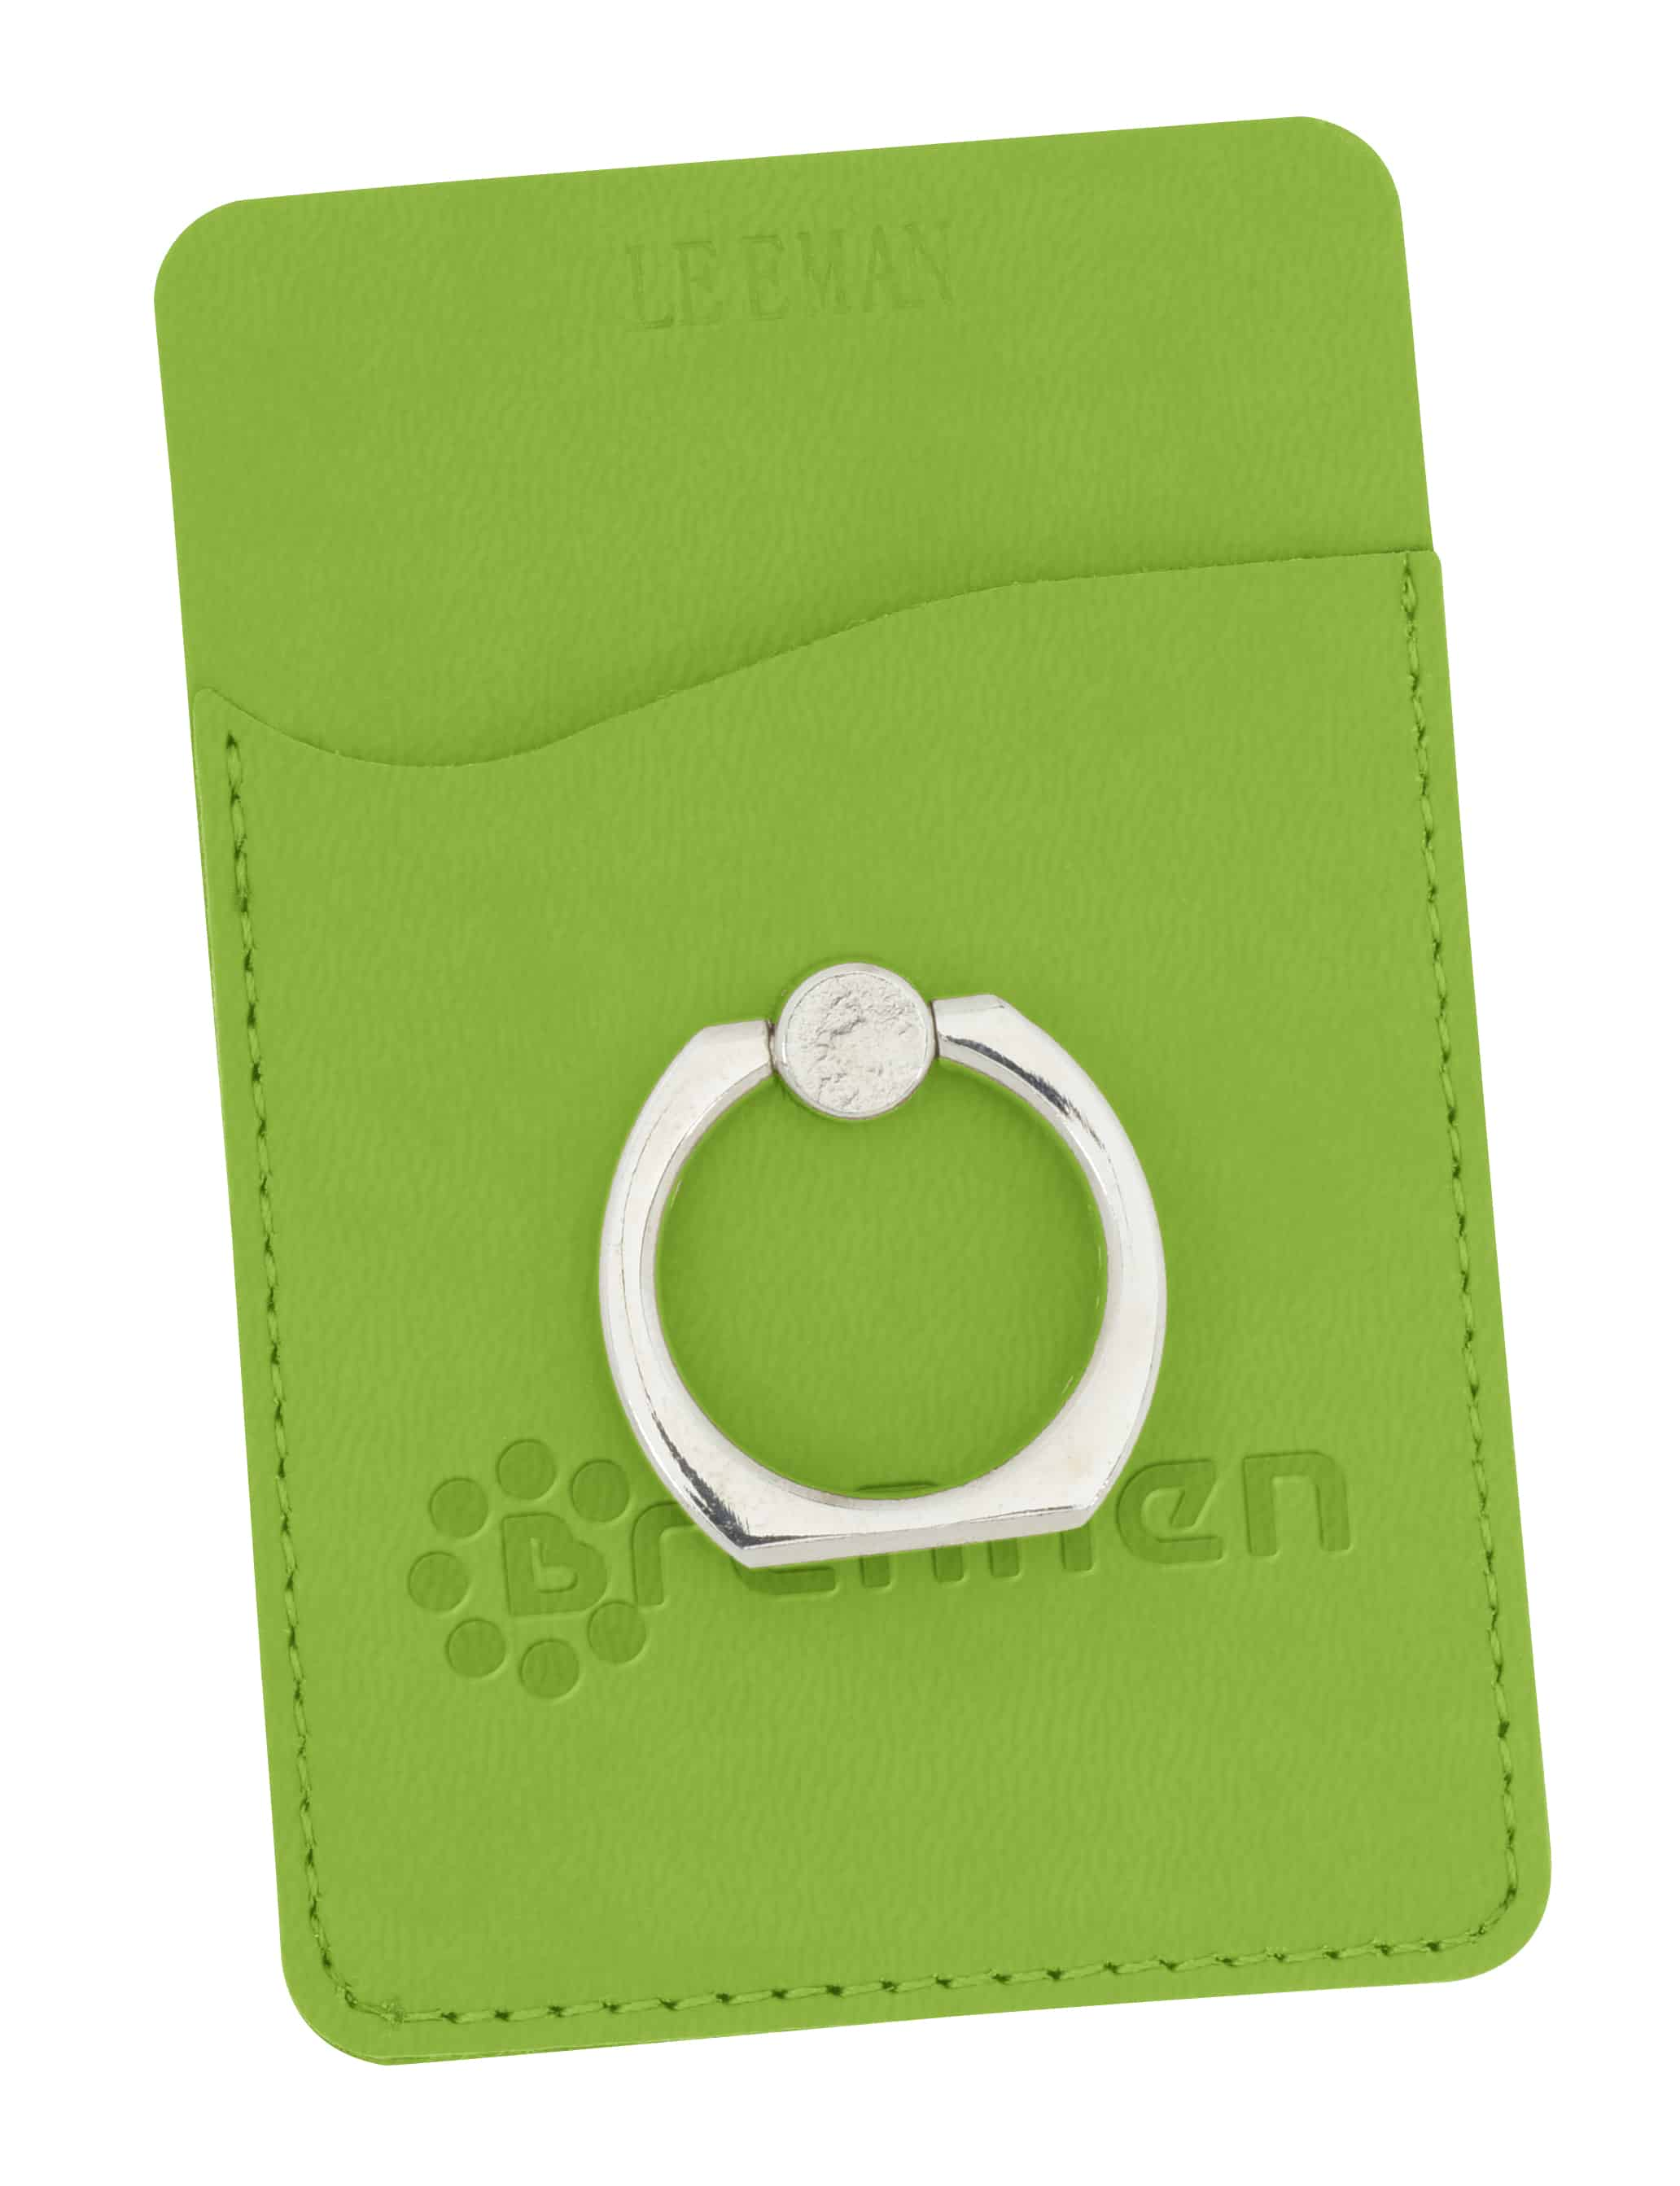 A green Tuscany Smartphone Wallet with Ring Phone Stand.